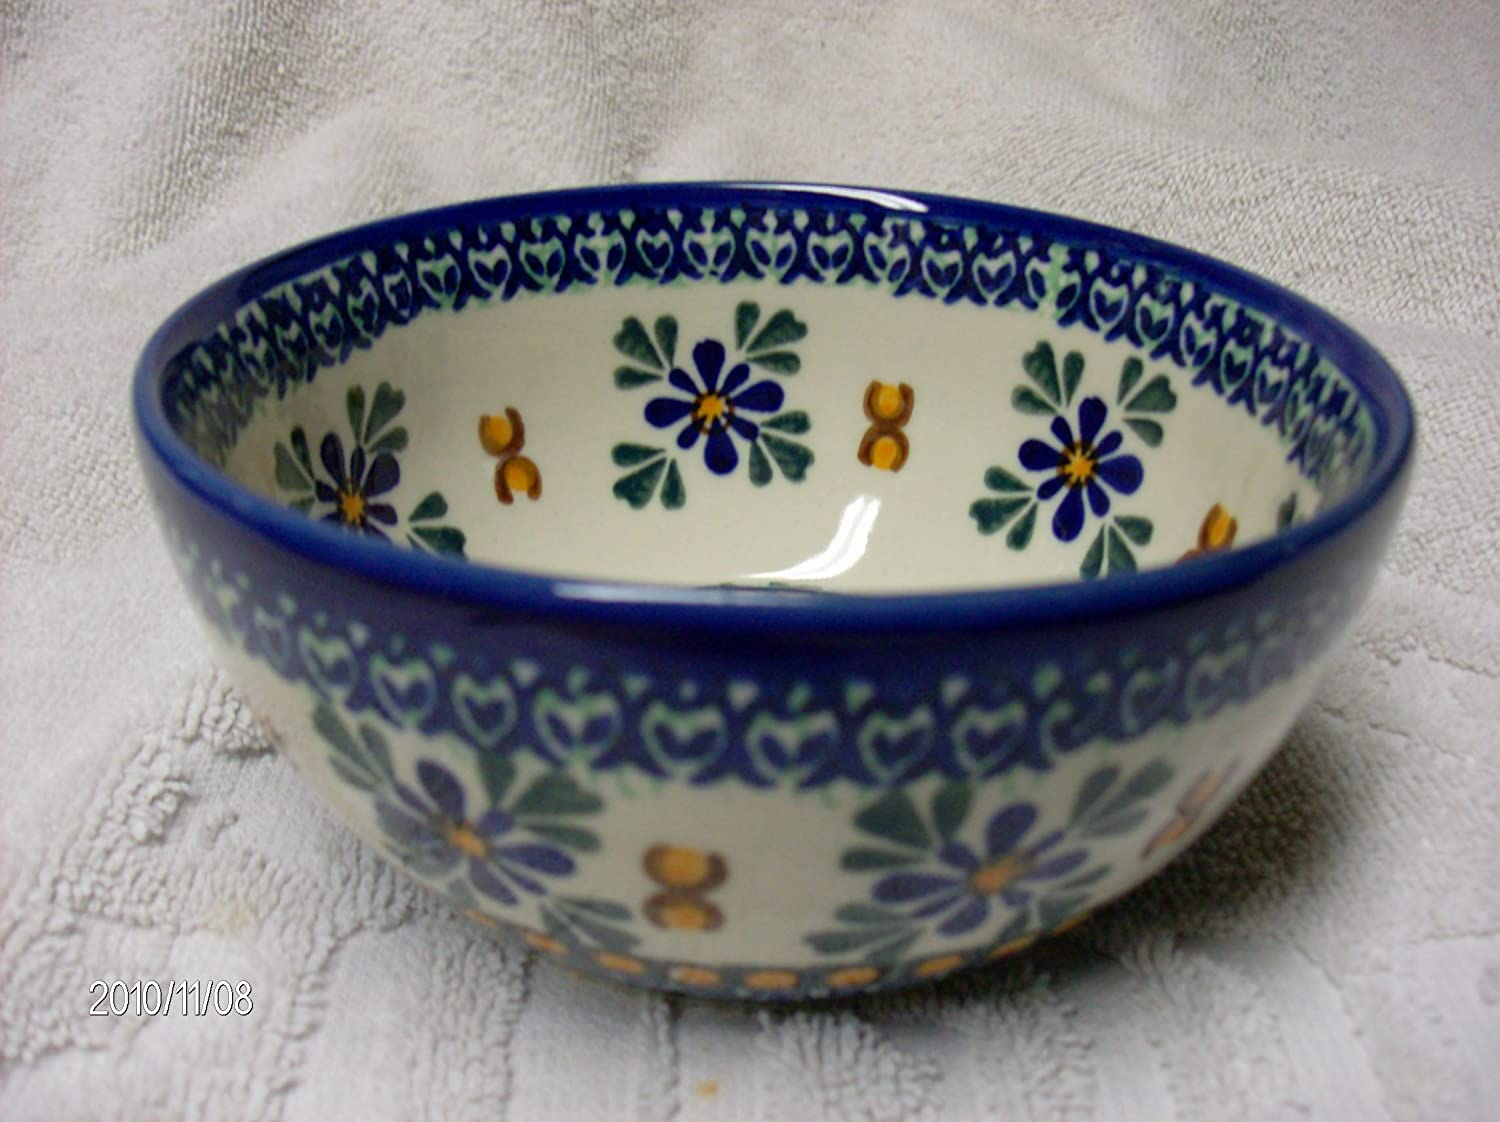 Polmedia Polish Pottery 5 Inch Stoneware Bowl H1085f Hand Painted From Millena In Boleslawiec Poland Shape S307b 3 03 Pattern P5414a 071 Home Kitchen